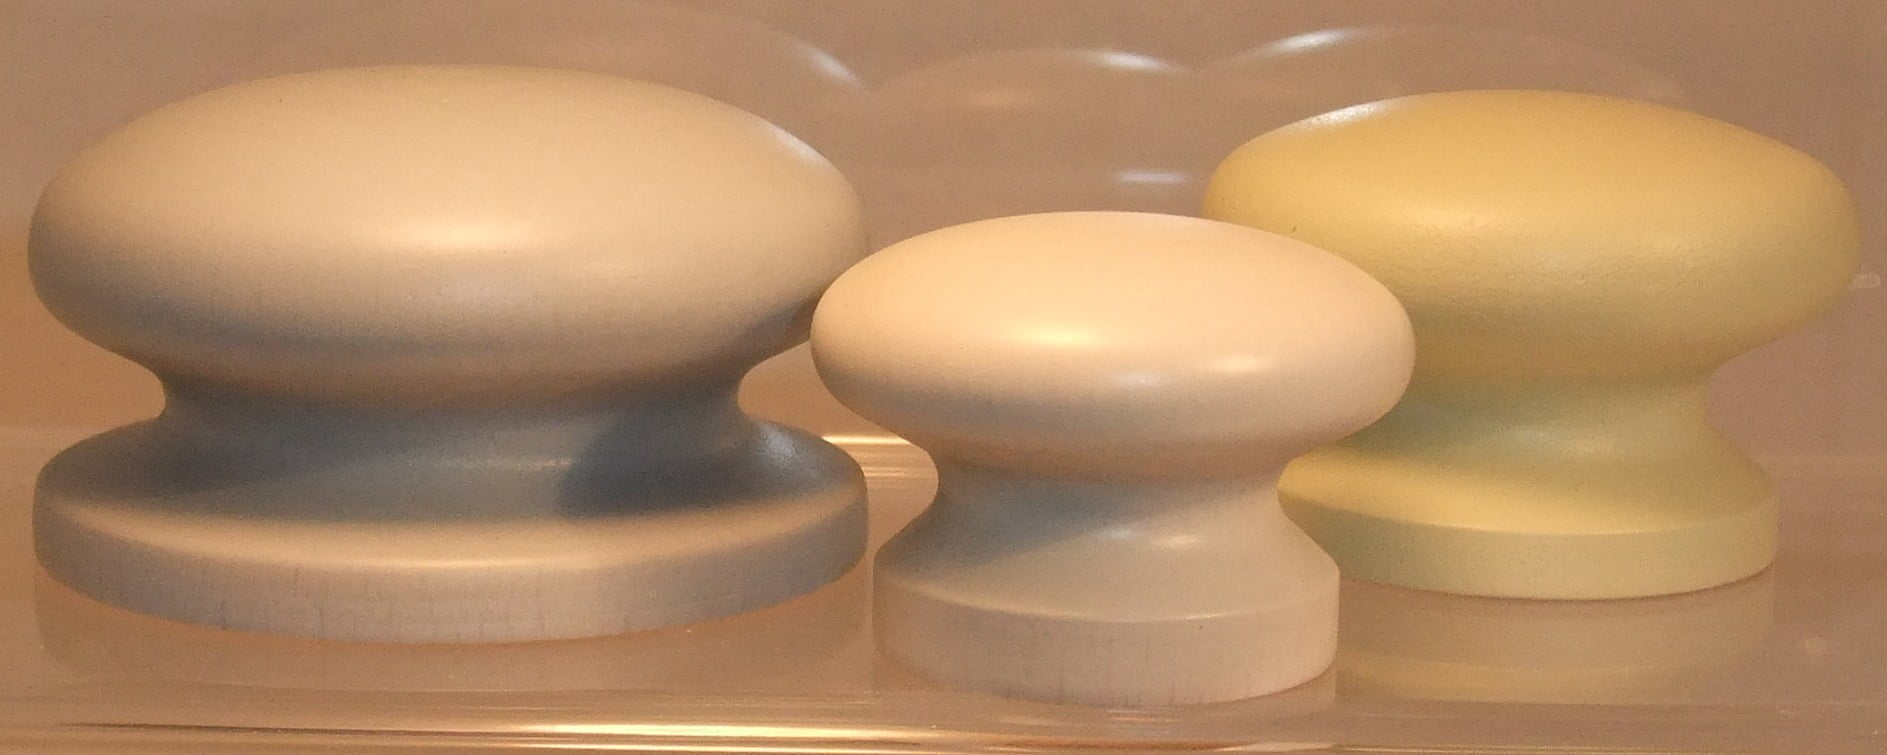 Gallery page wooden door knobs Farrow and Ball cupboard knobs